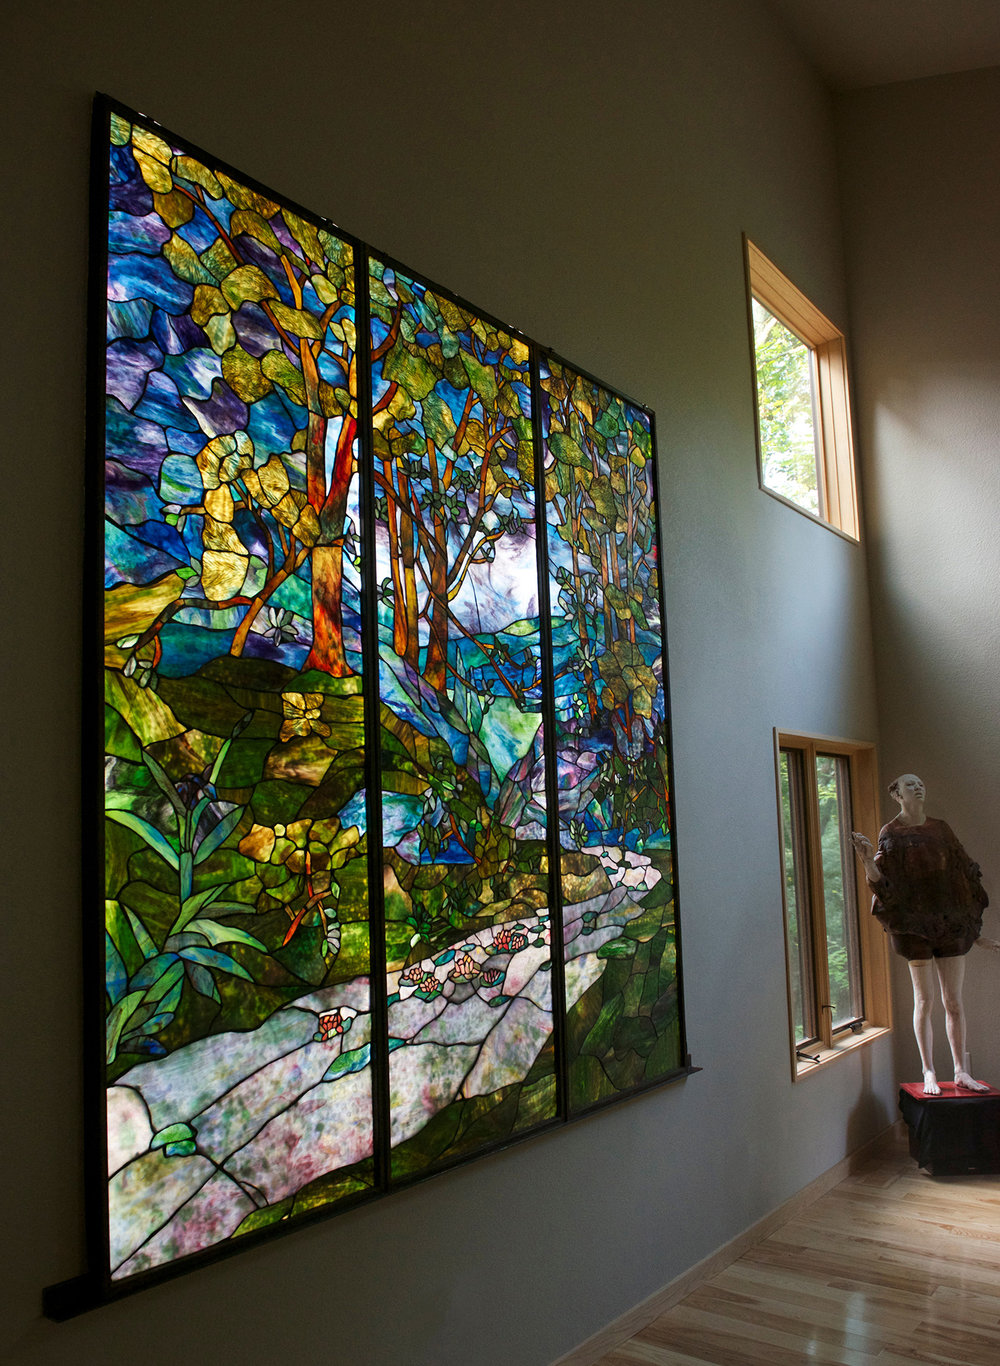 Backlit Stained Glass, Artwork by Ted Gross